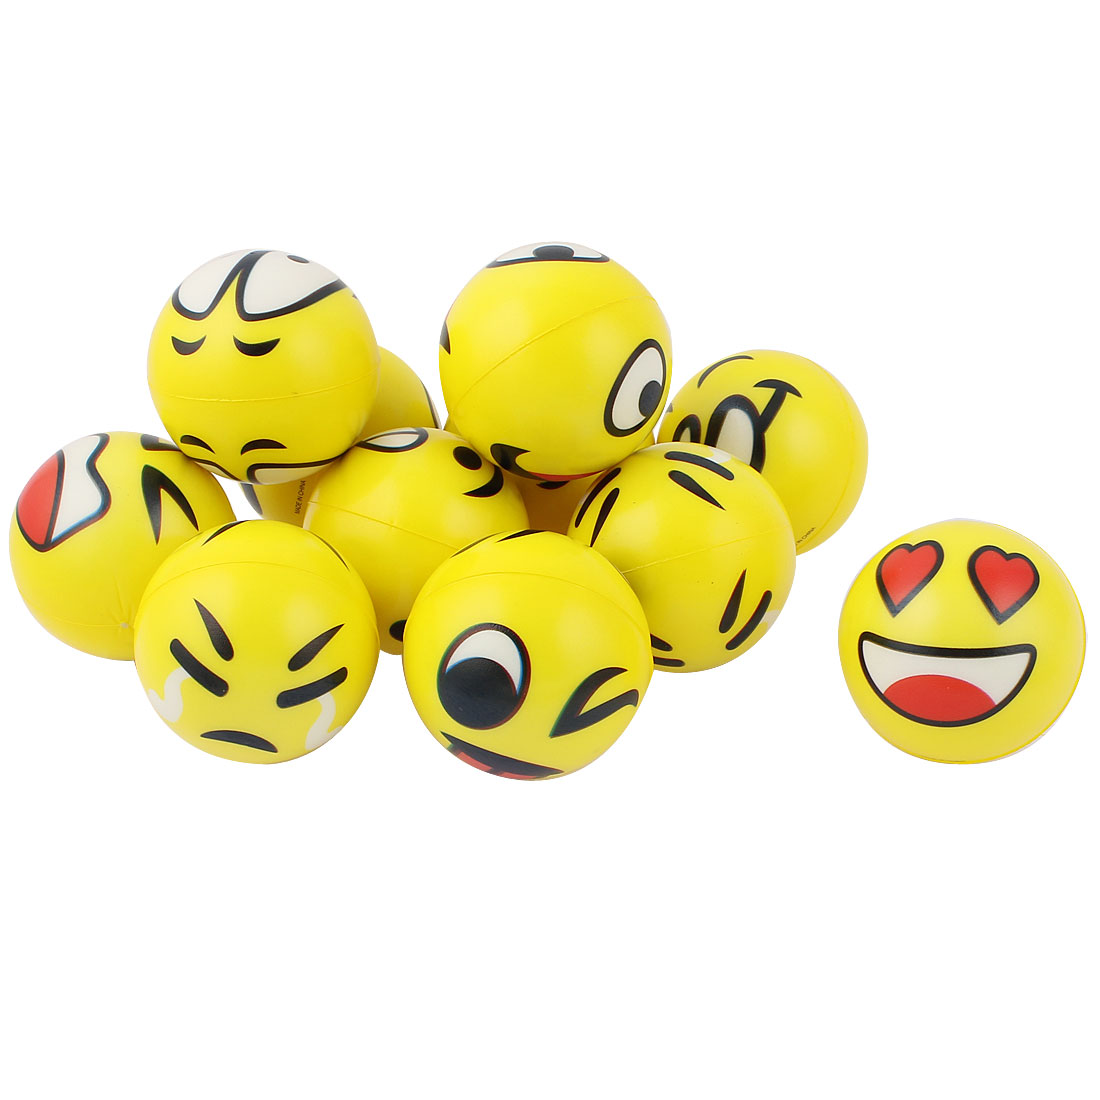 11pcs Yellow Foam Happy Face Hand Wrist Finger Exercise Stress Relief Therapy Squeeze Ball